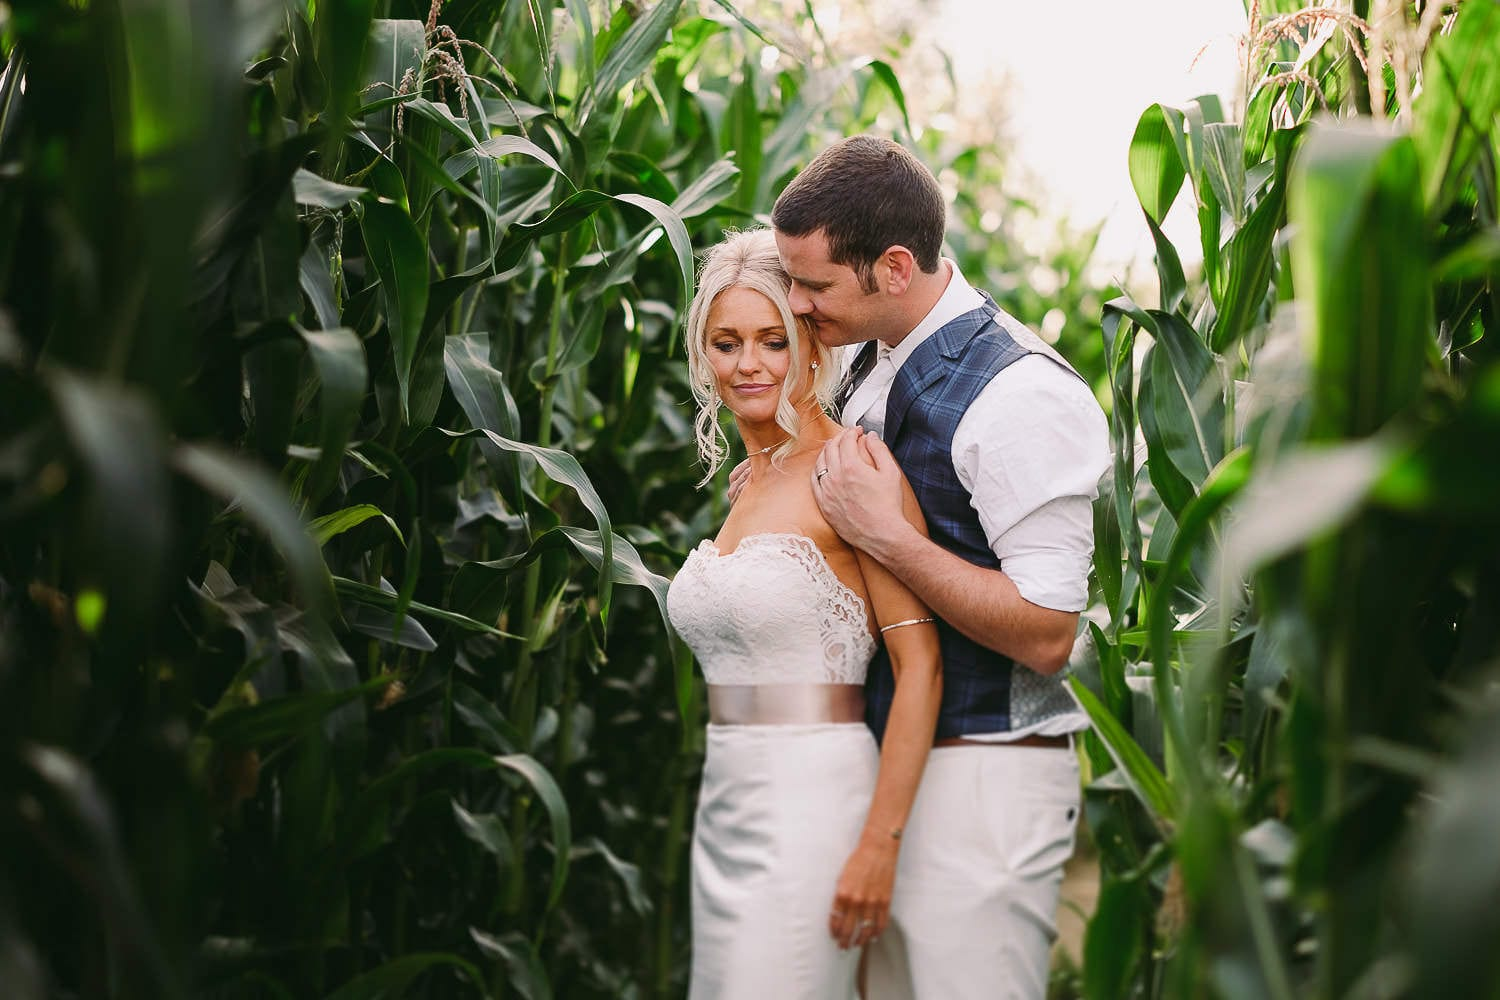 A portrait of the bride and groom in a cornfield